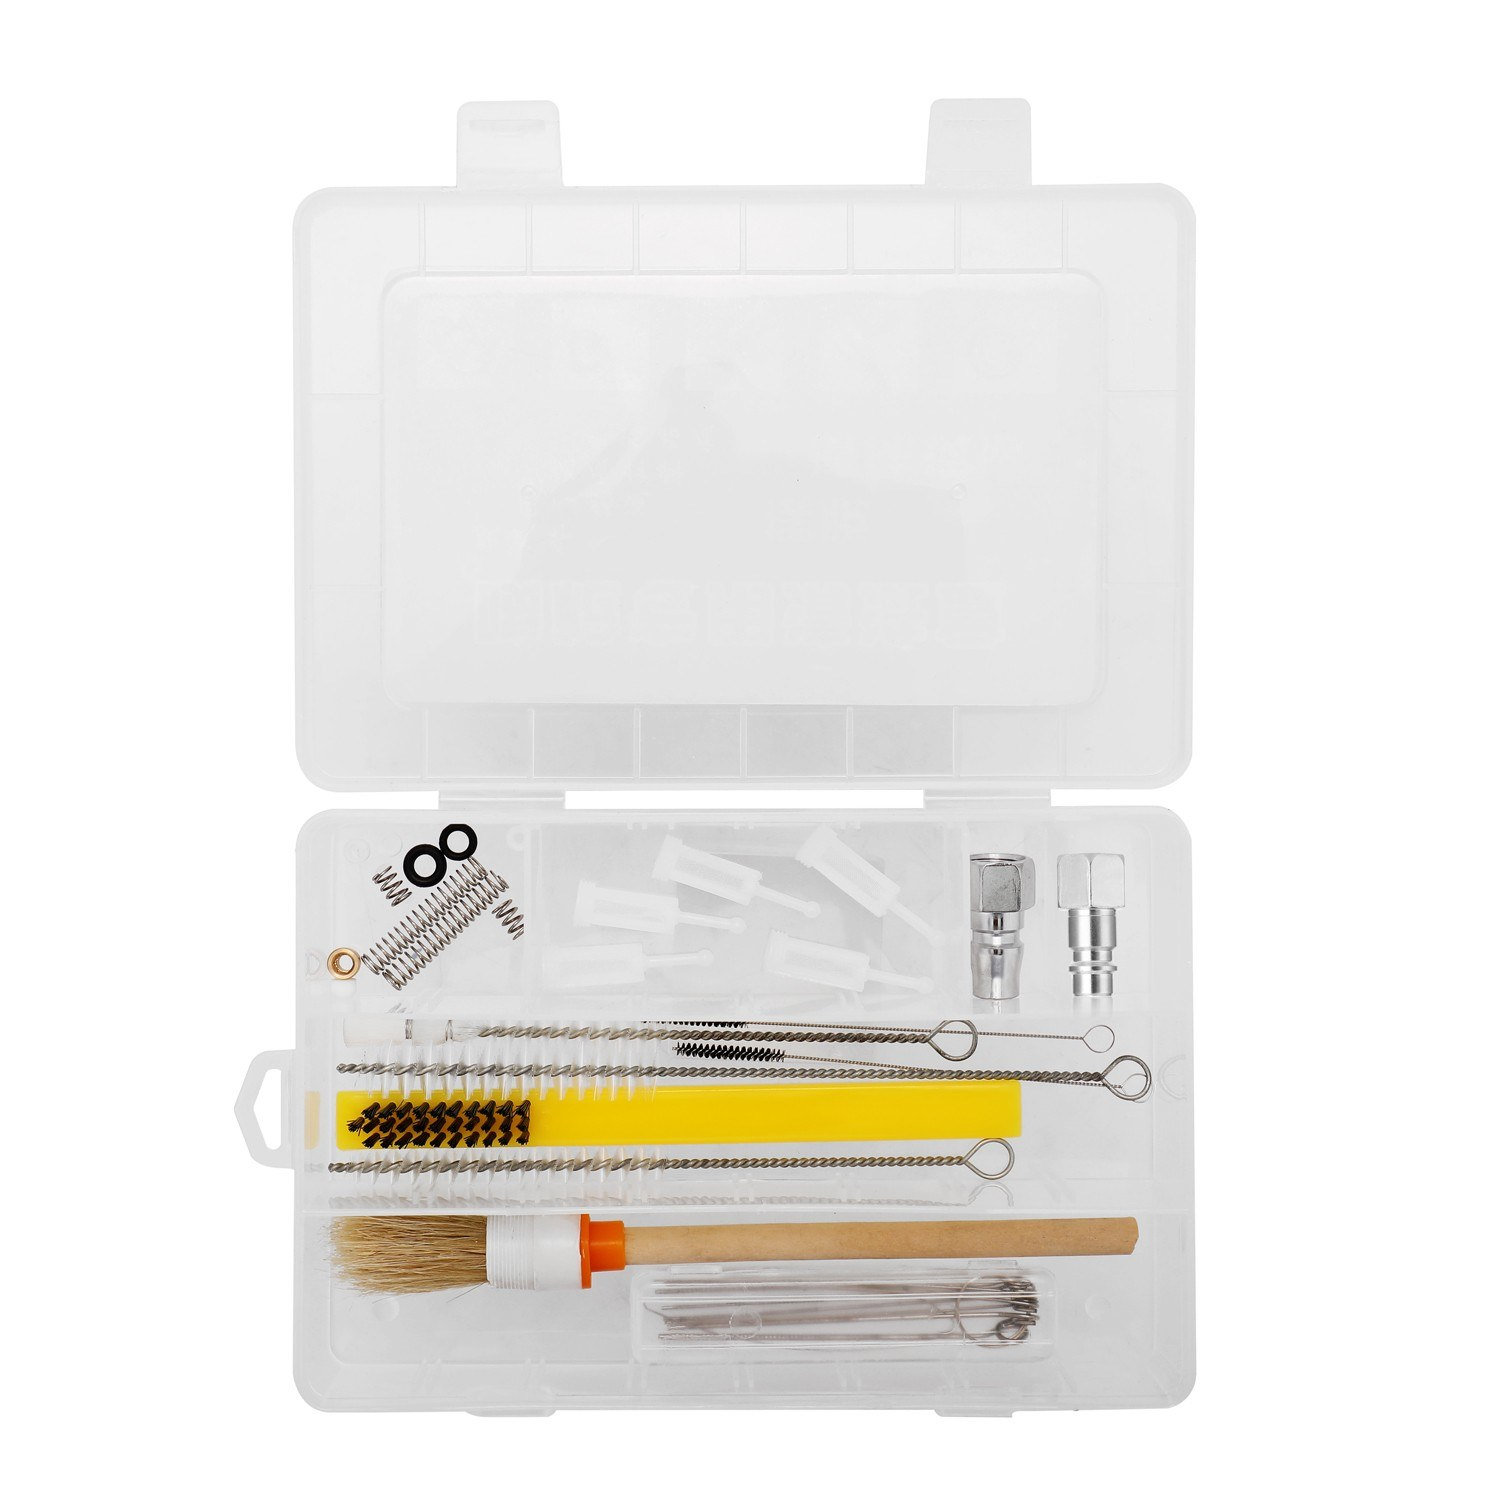 Professional Multifunctional Airbrush Special Cleaning Box Set Clean Spray Machine Kit with Connectors